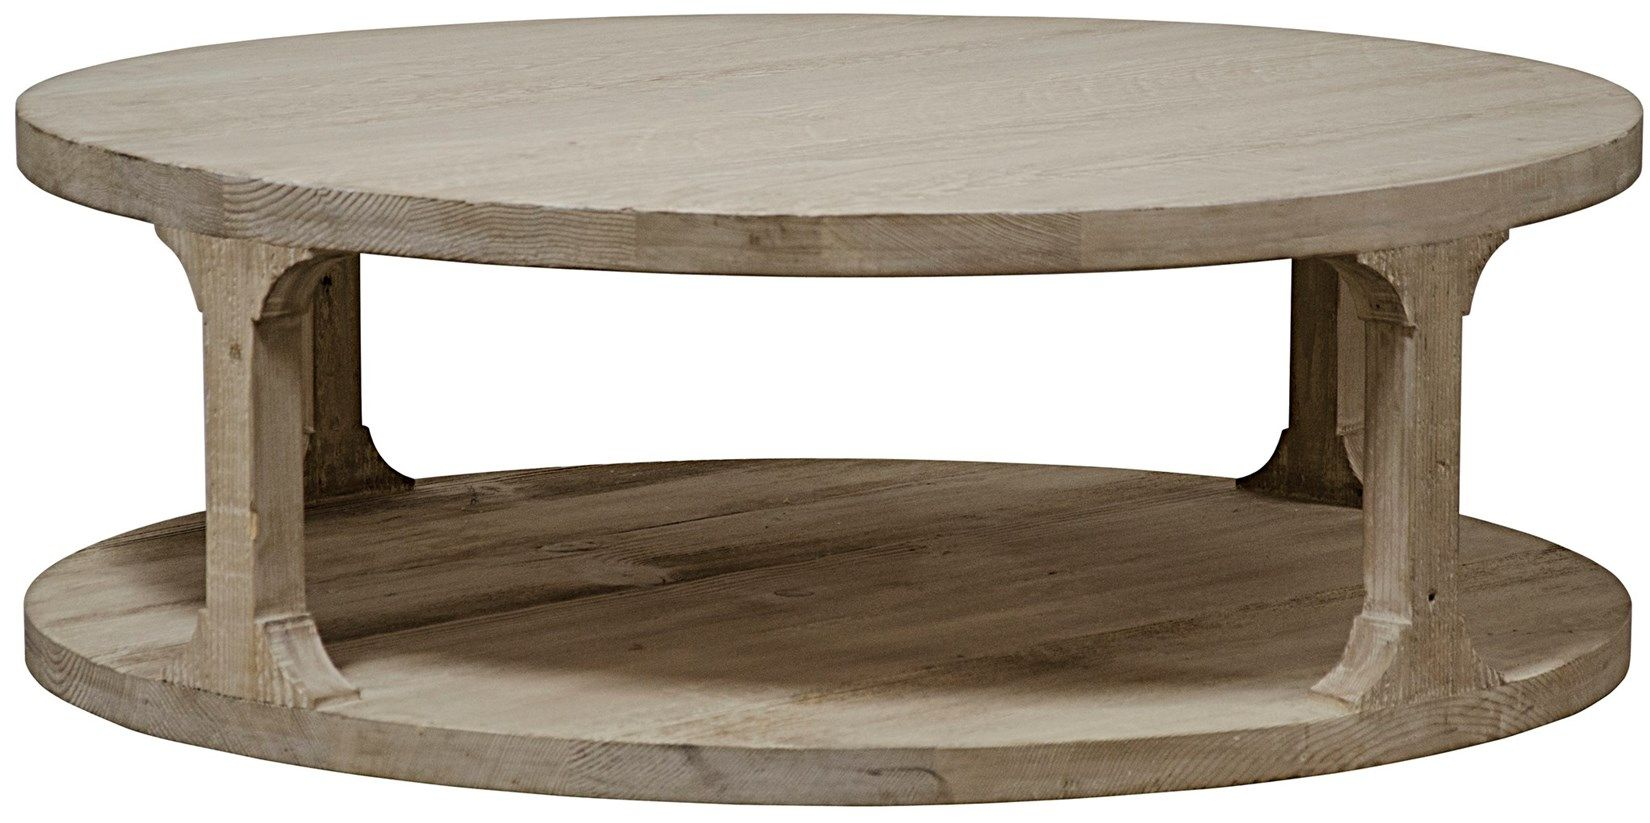 Cfc Gimso Round Coffee Table Tables Rustic